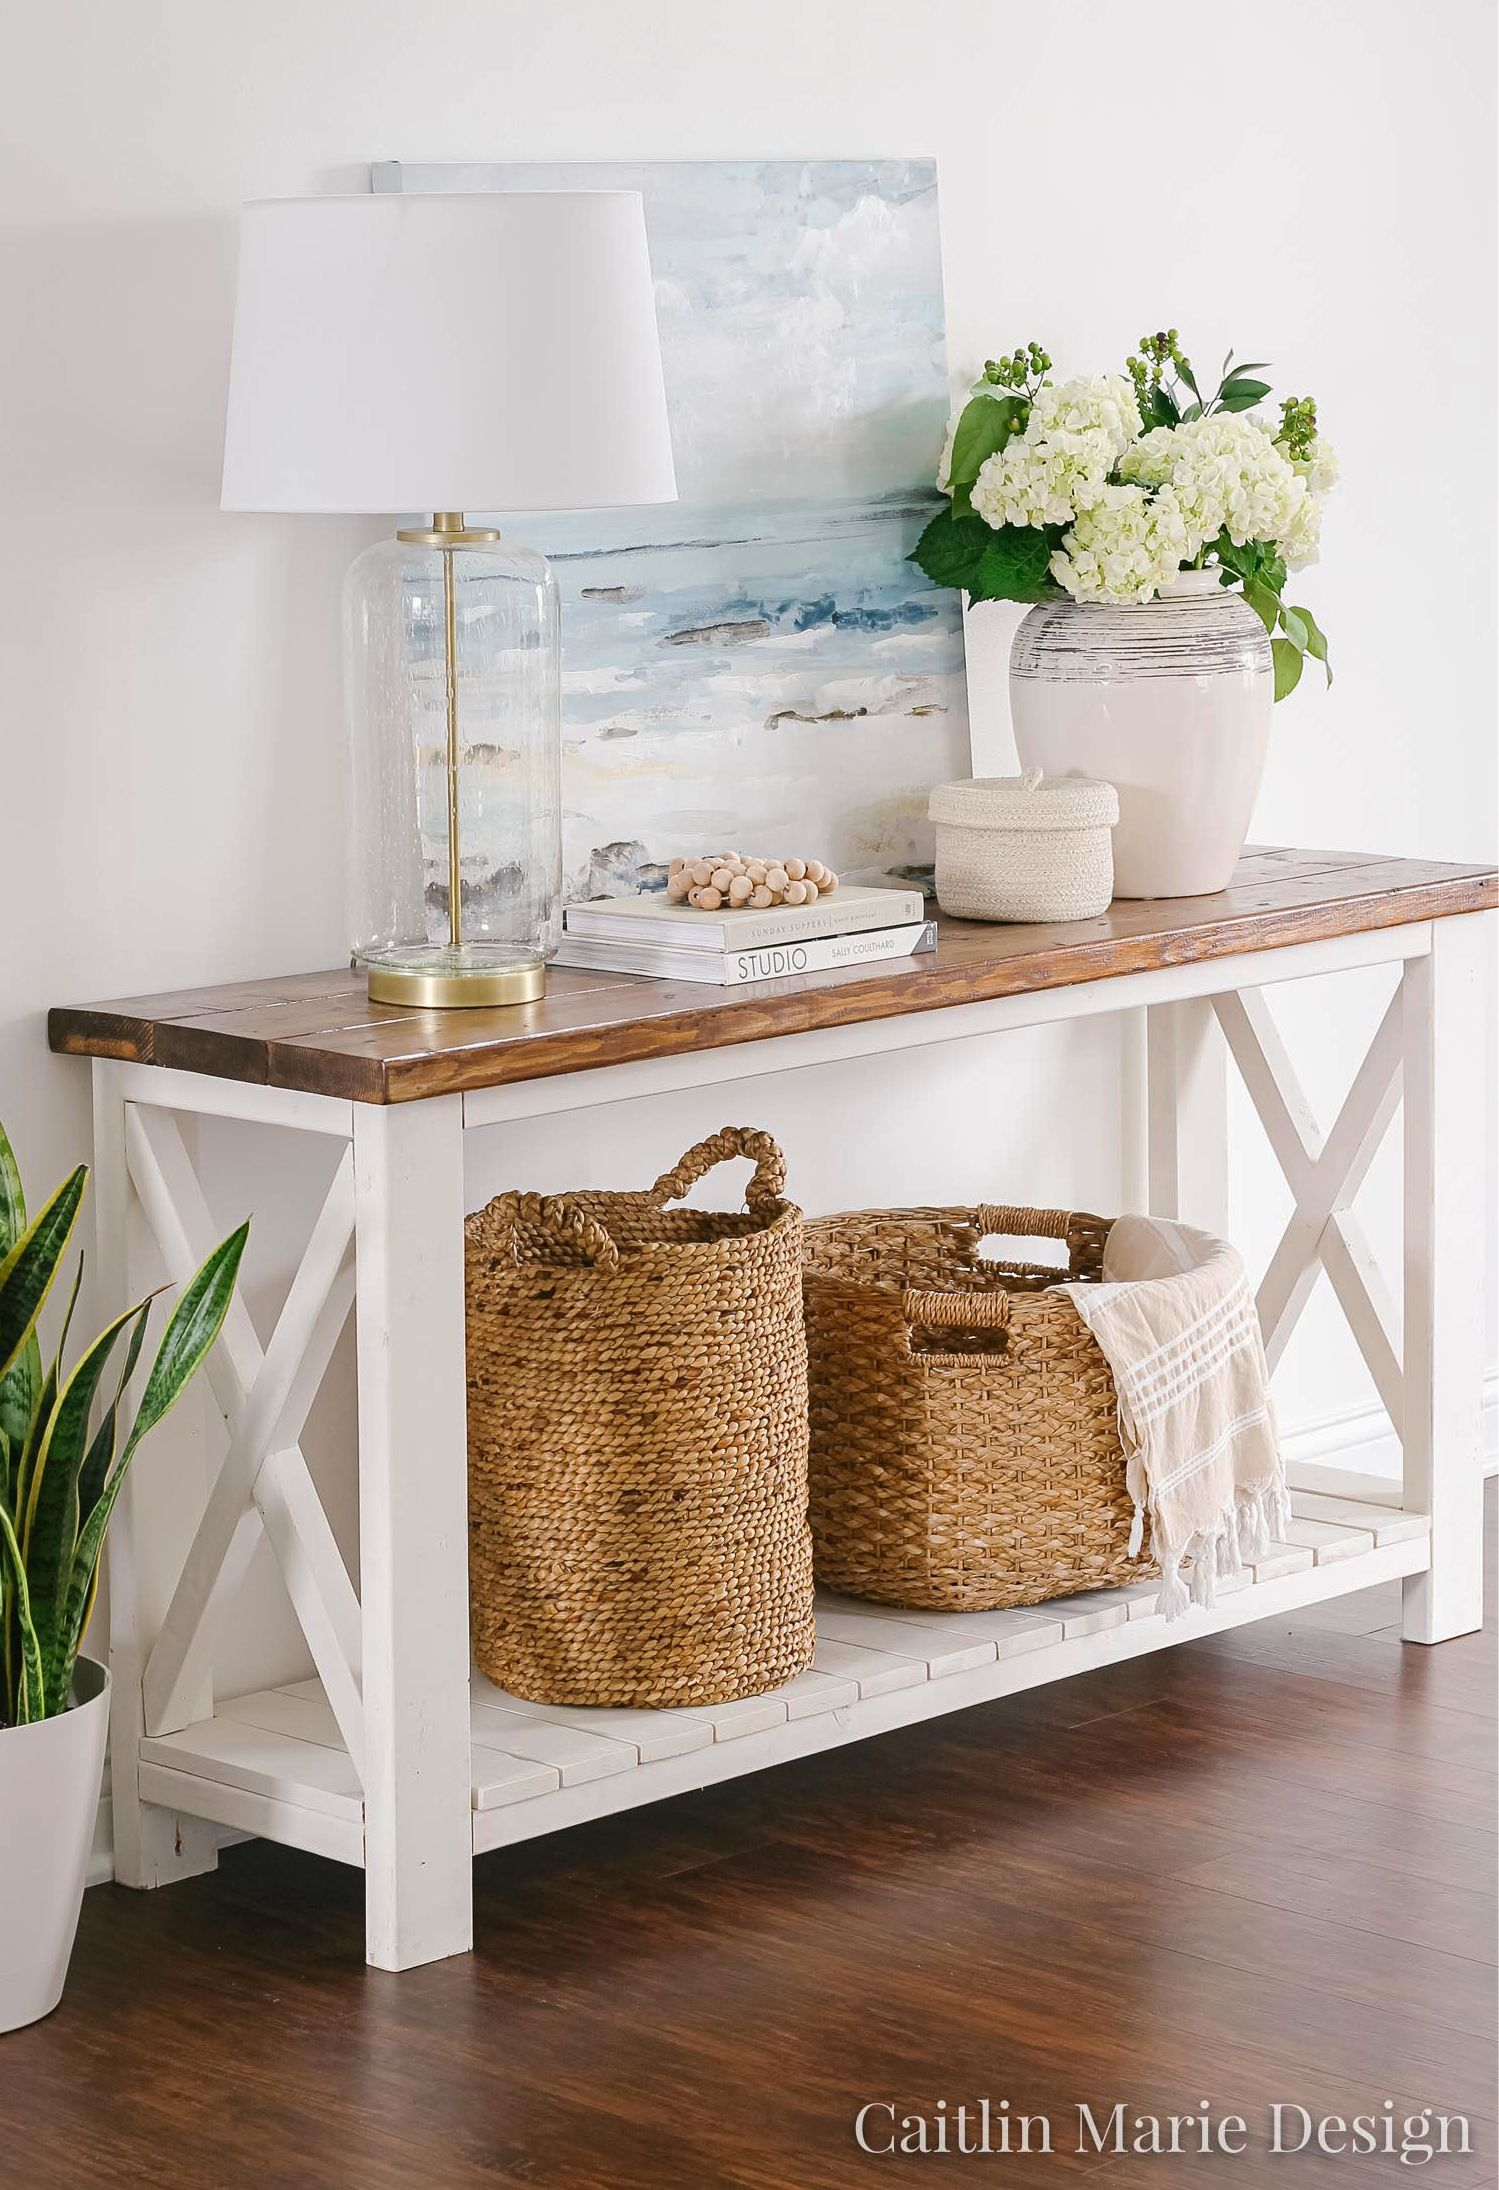 Wicker Baskets -Decorative Storage Solution for Coastal Style  Interiors #coastallivingrooms